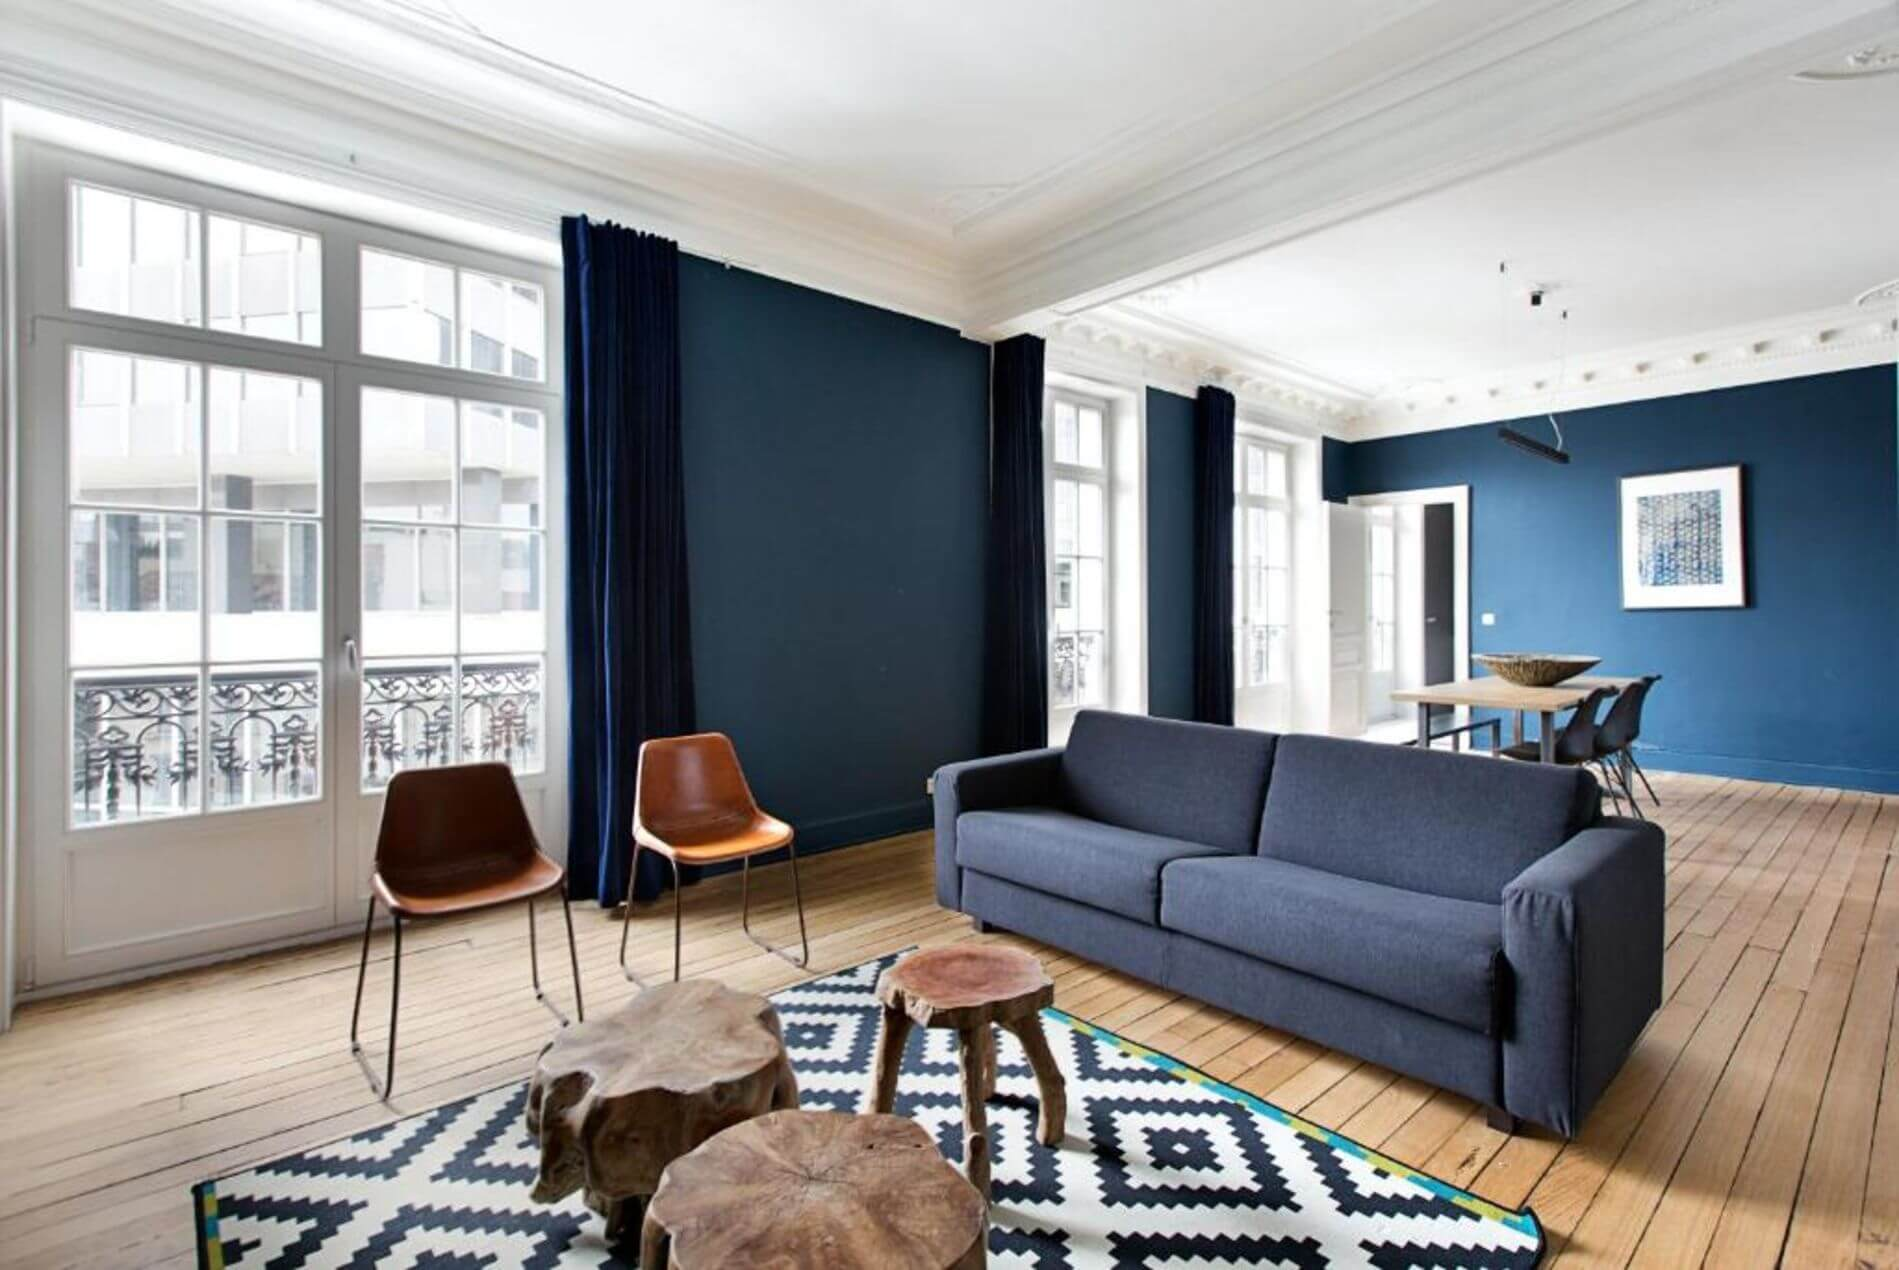 Delux accommodation in Antwerp